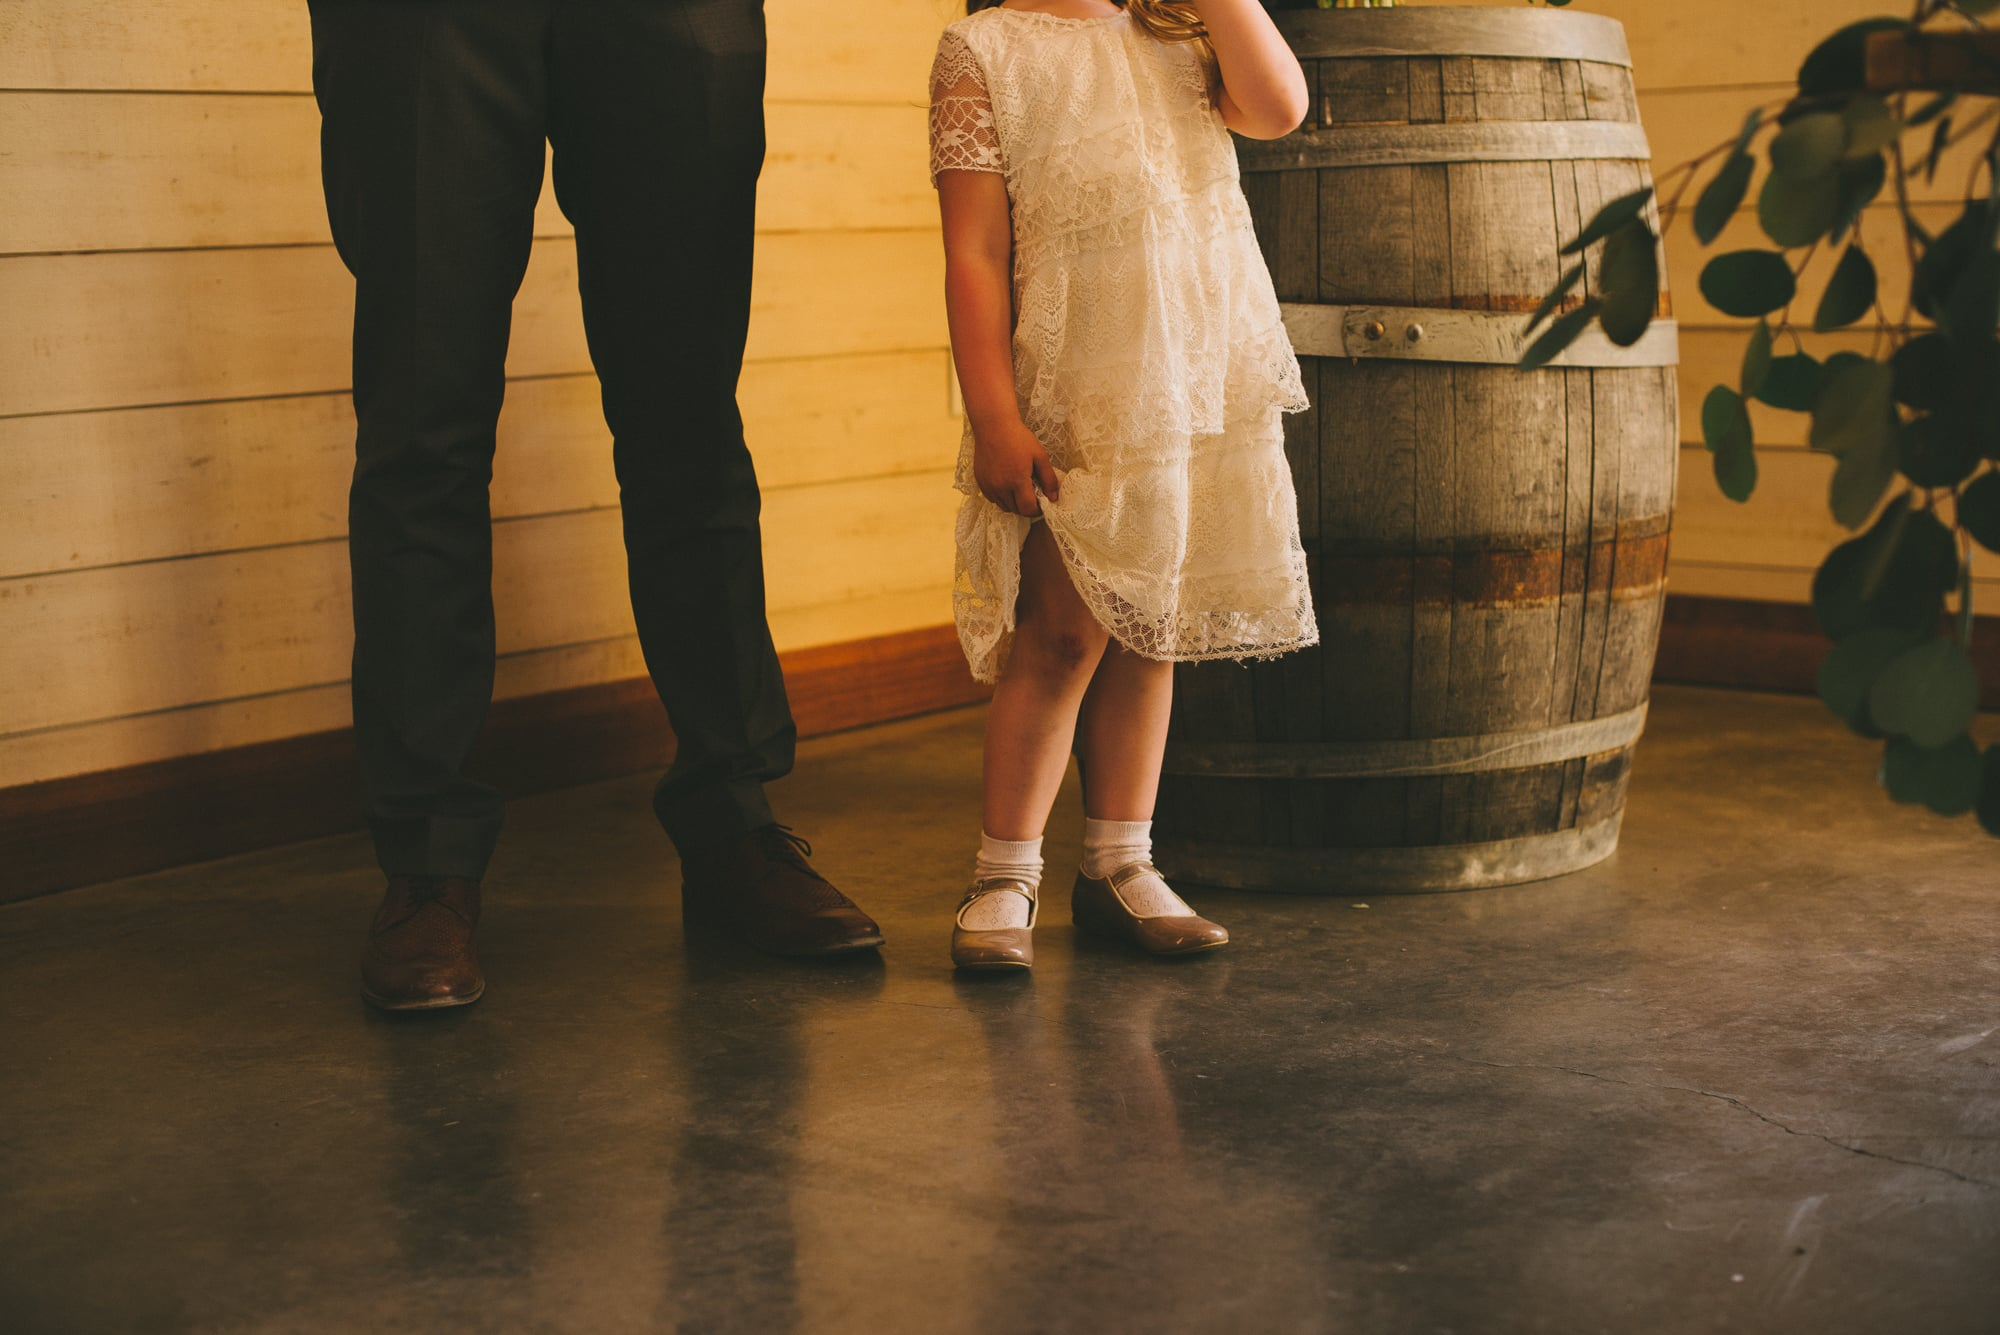 97-birdseye-cove-farm-wedding-sara-rogers-photography.jpg